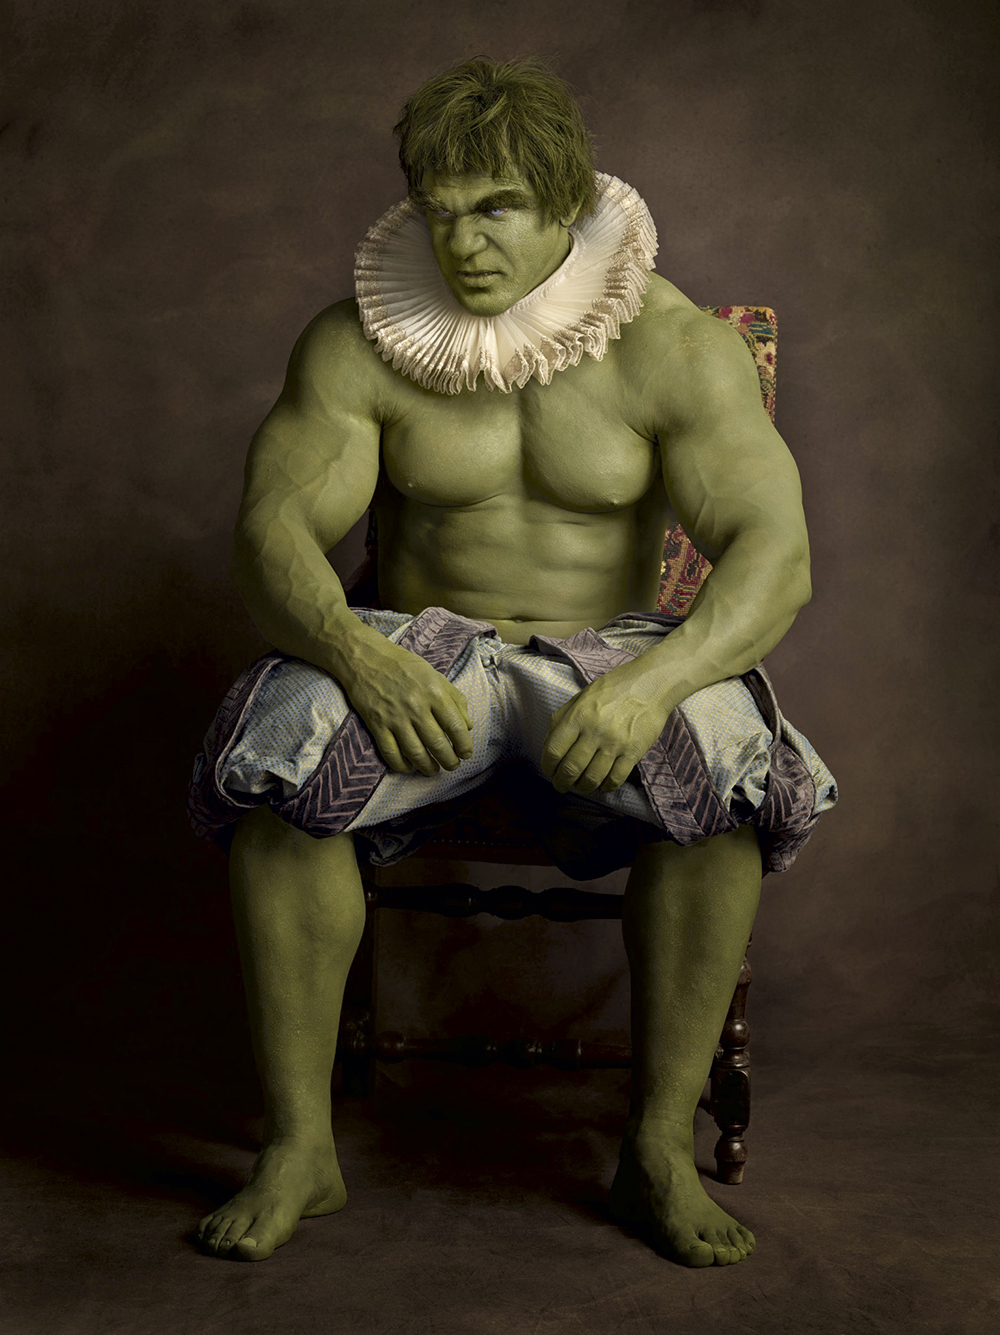 Sacha-Goldberger The Hulk